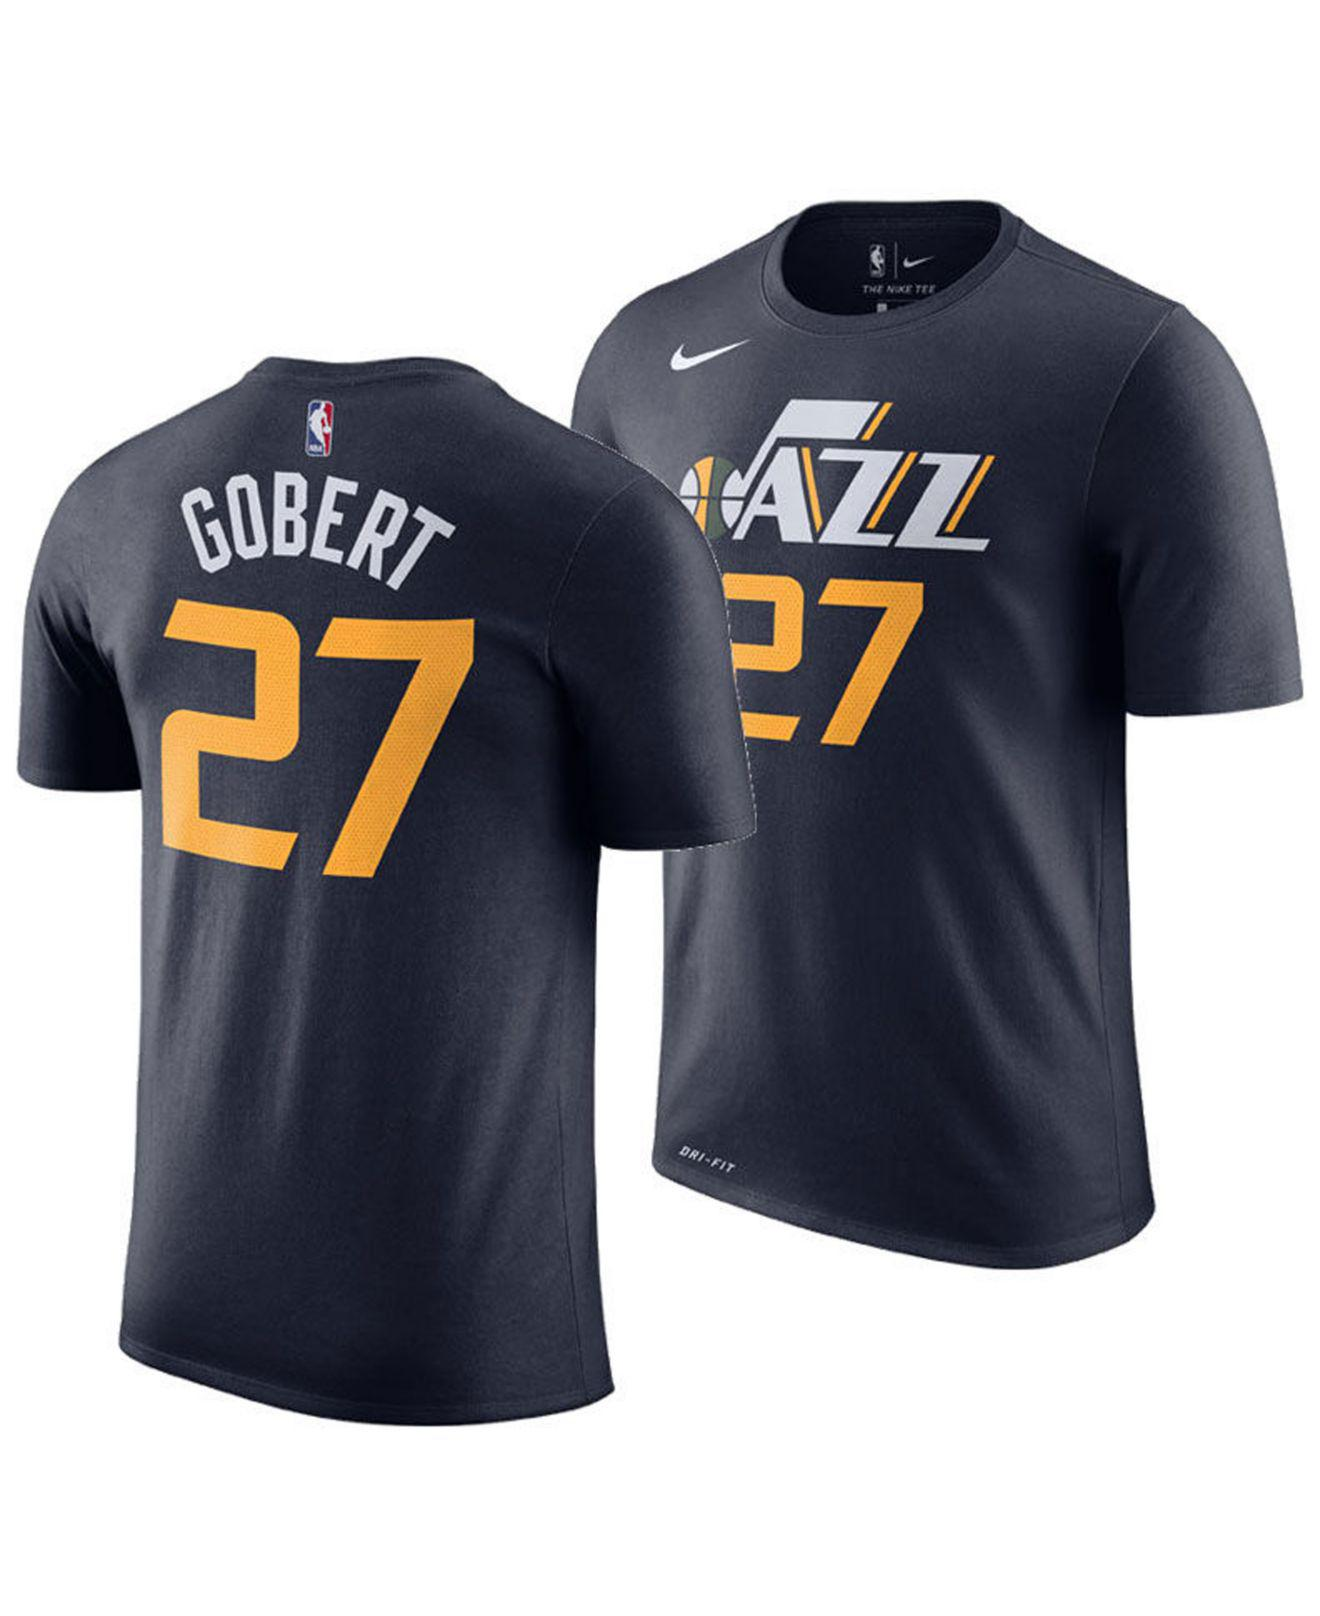 a24696f83 Lyst - Nike Rudy Gobert Utah Jazz Icon Player T-shirt in Blue for Men